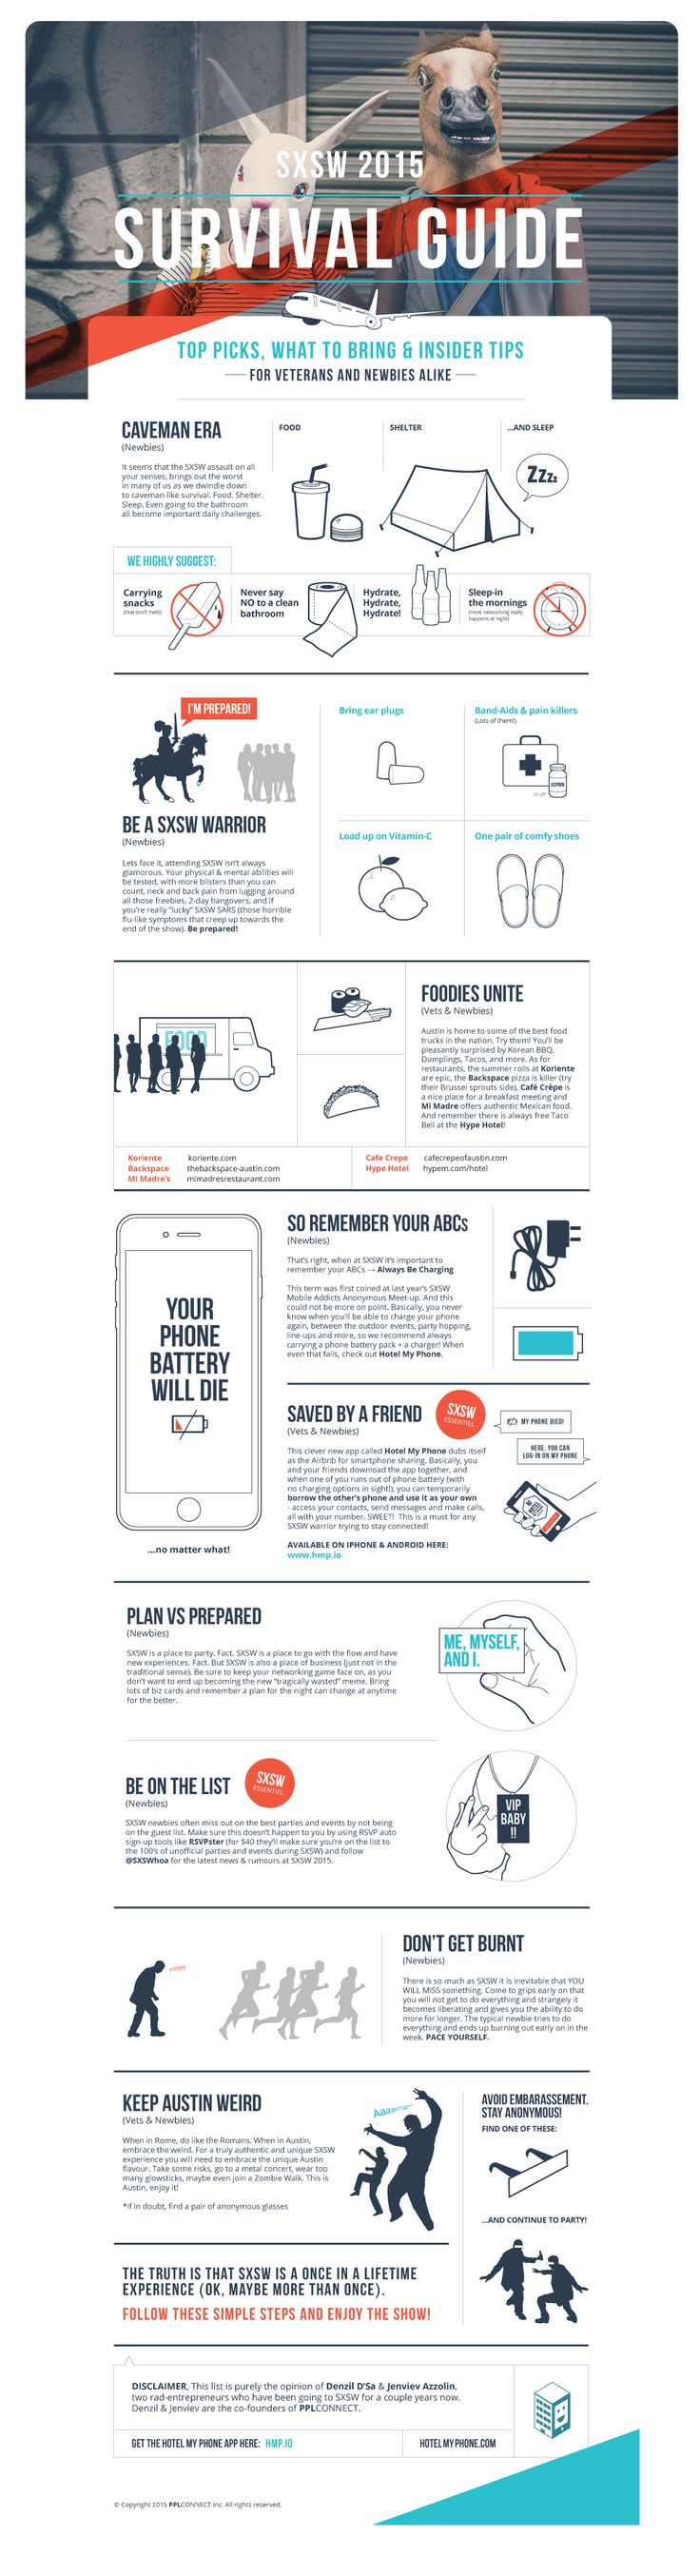 SXSW 2015 Survival Guide: http://about.pplconnect.mobi/blog/sxsw-2015-survival-guide/  For newbies & veterans #SXSW #SXSWi #SXSWinteractive #SXSW2015